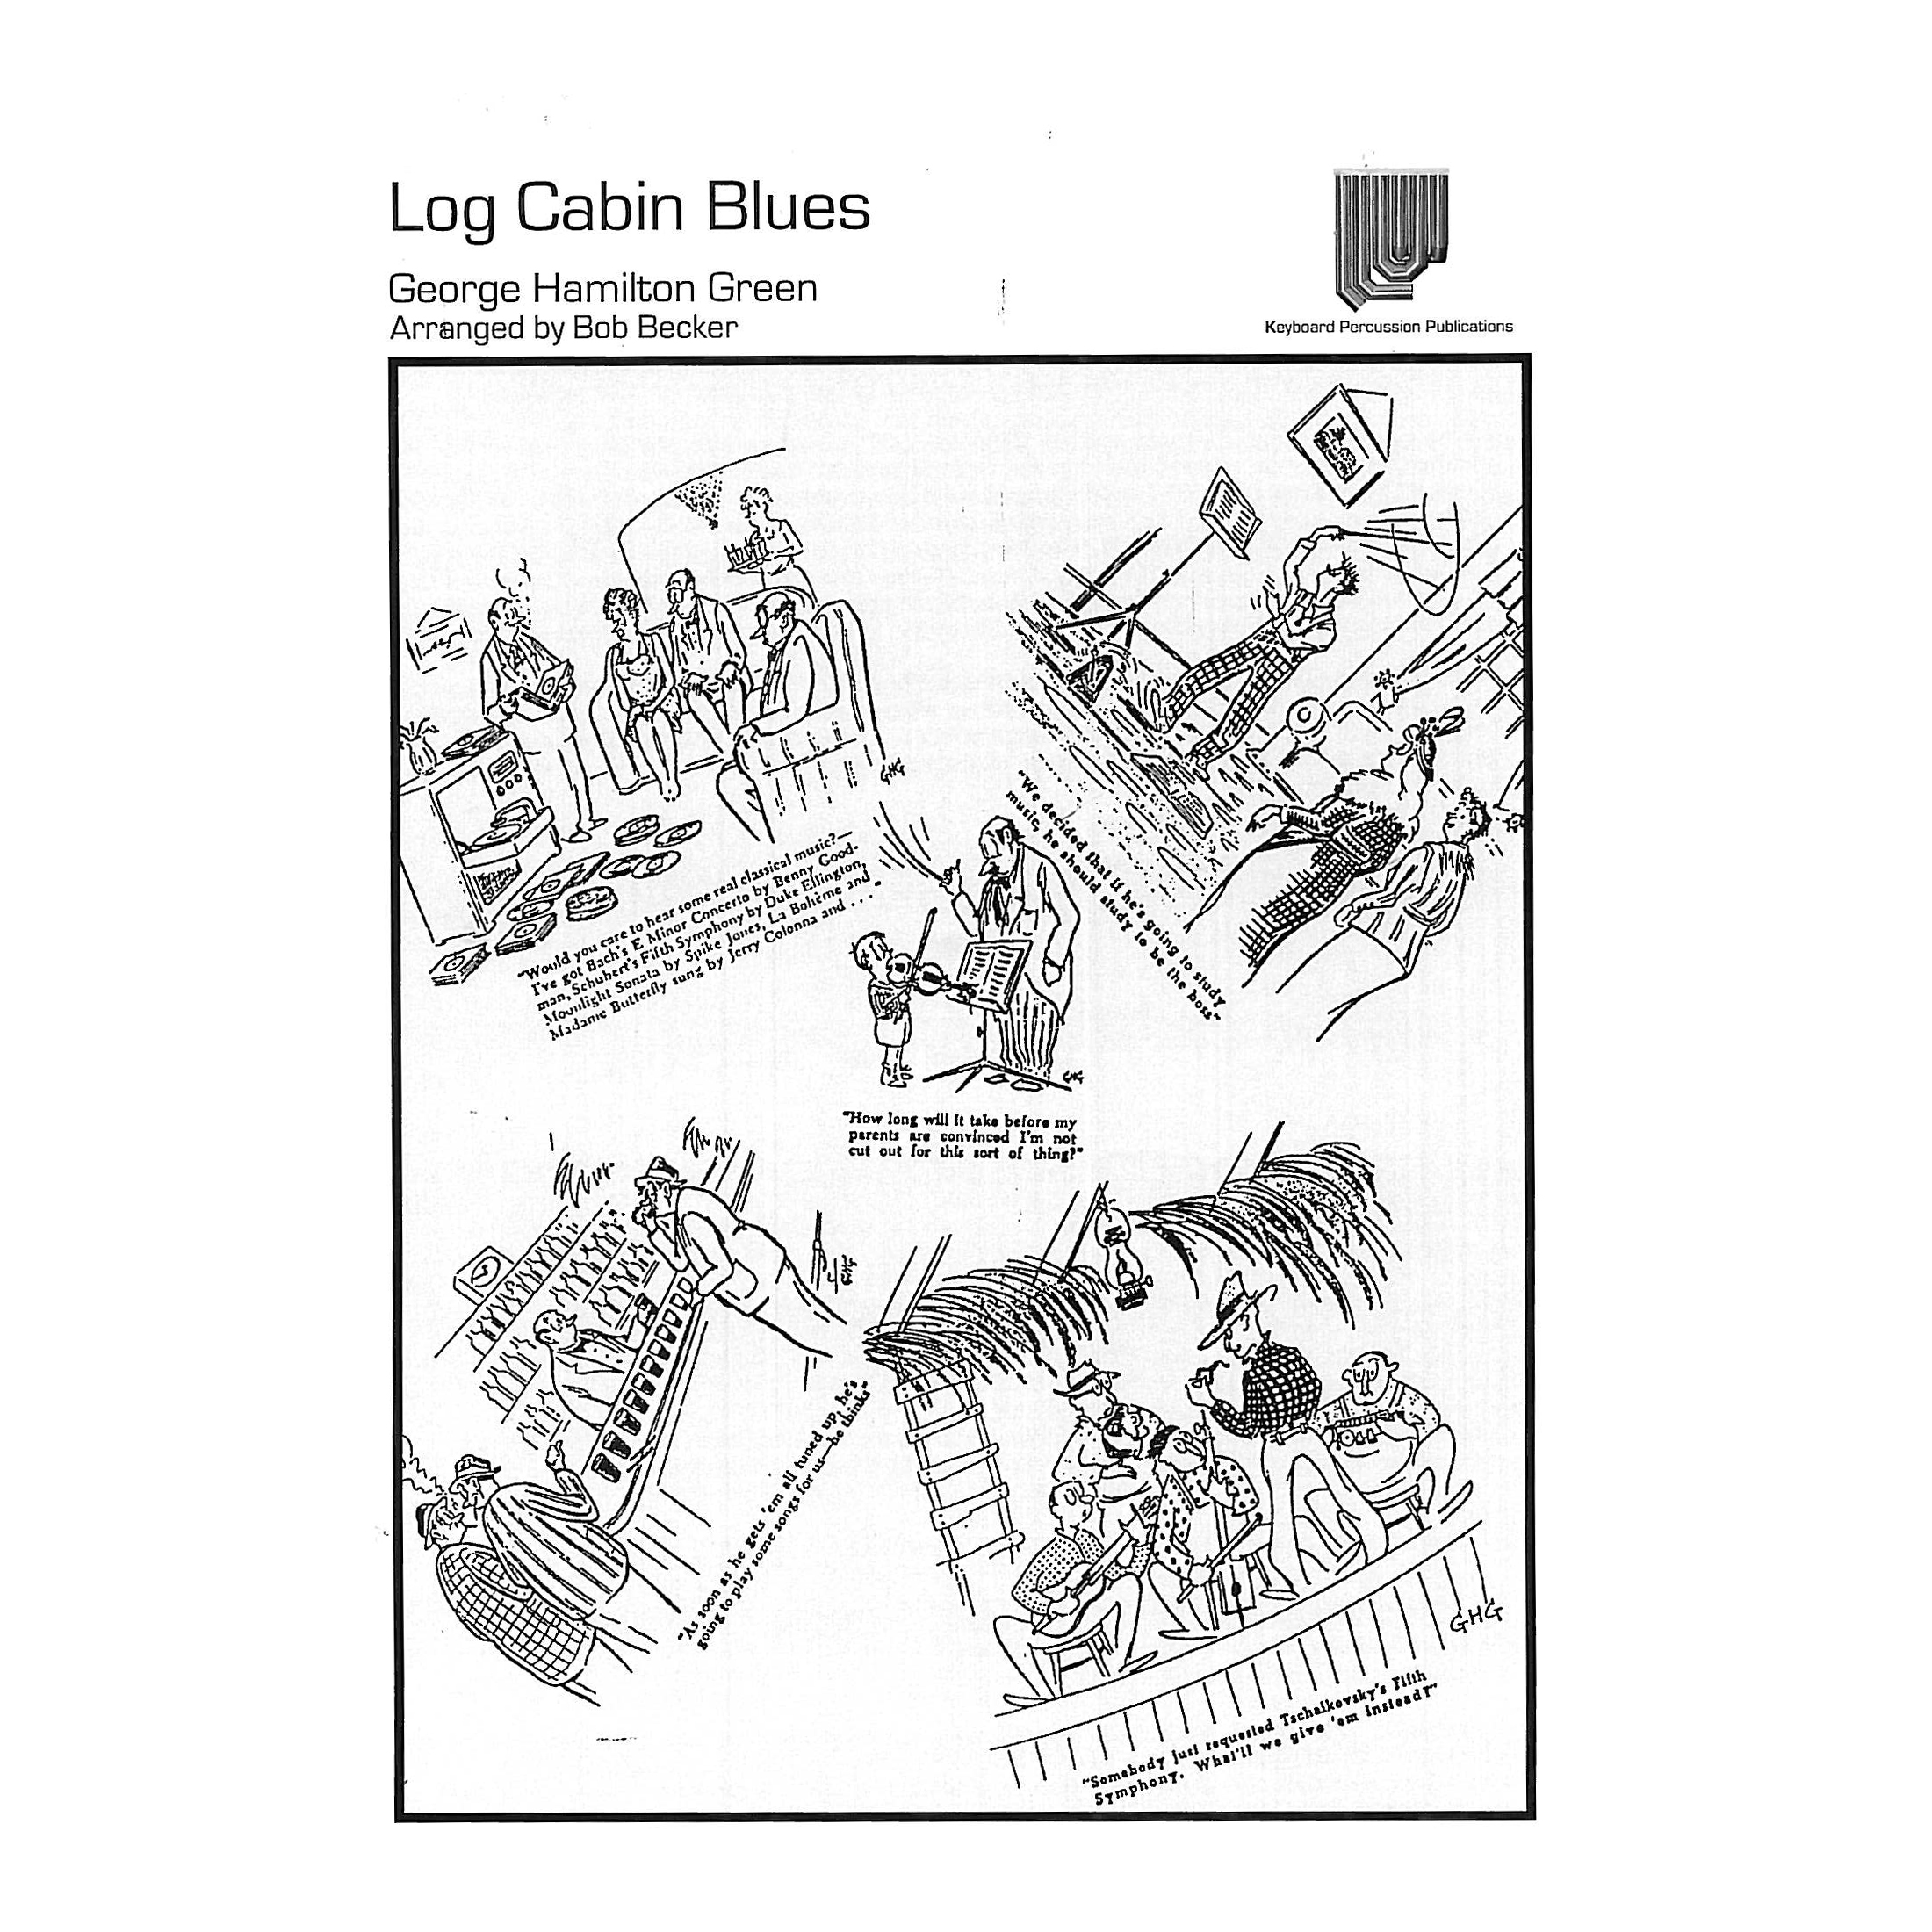 log cabin blues by george hamilton green arr  bob becker